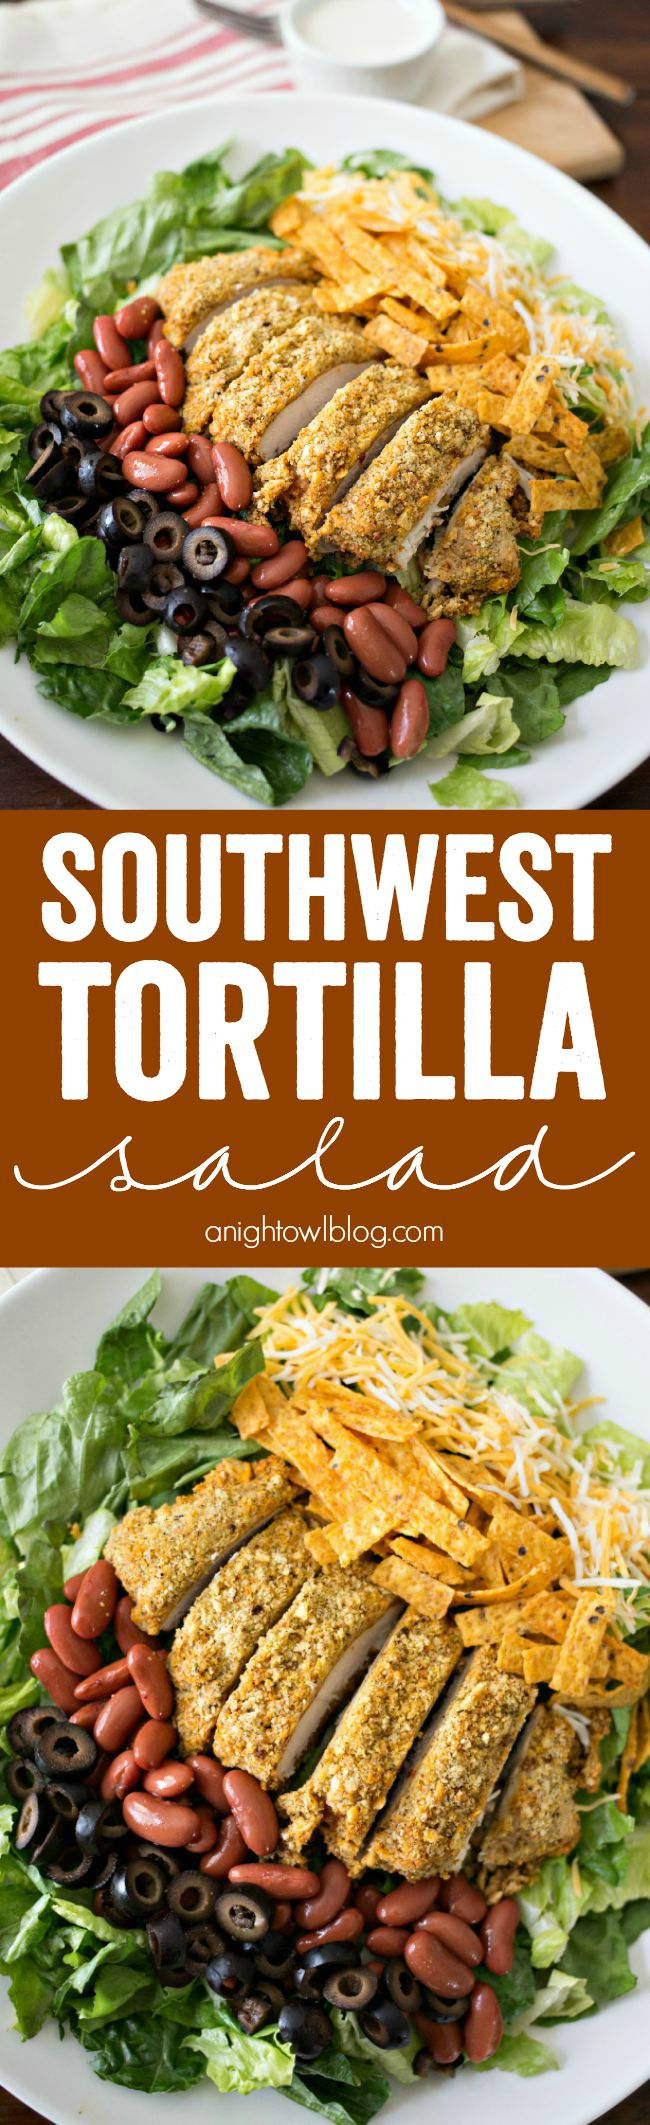 Southwest Tortilla Salad - a delicious, easy and filling salad you can make at home!